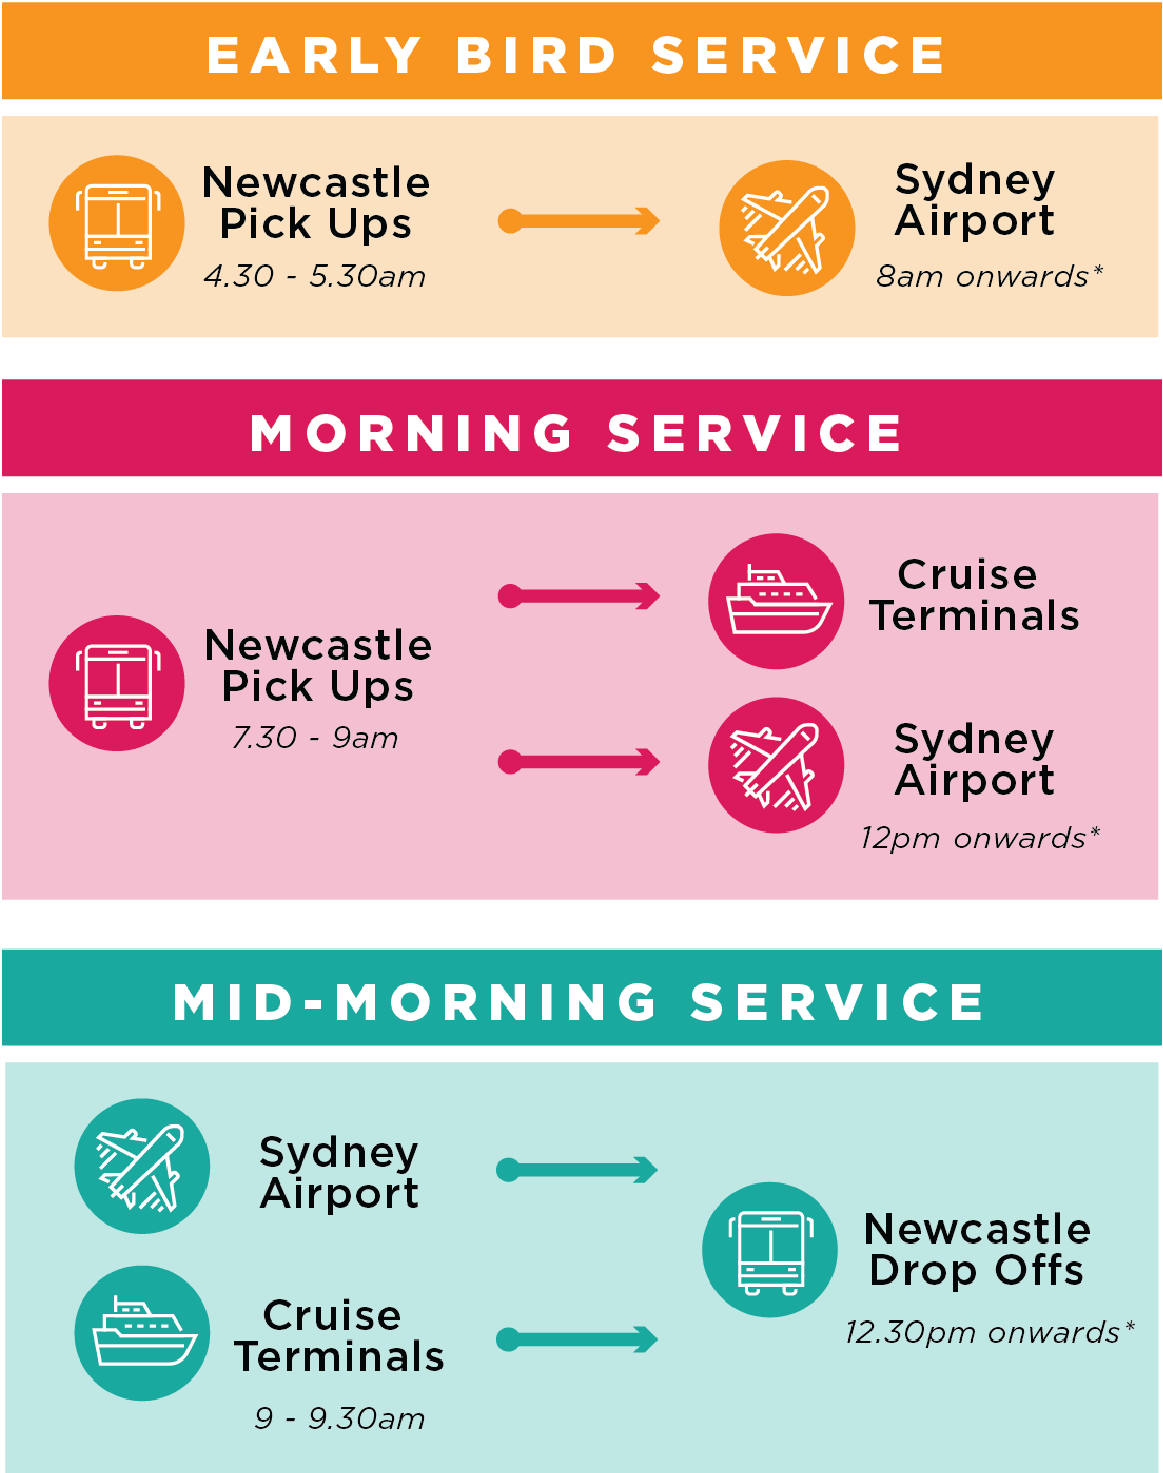 shuttle bus schedule cruise terminal airport newcastle Sydney